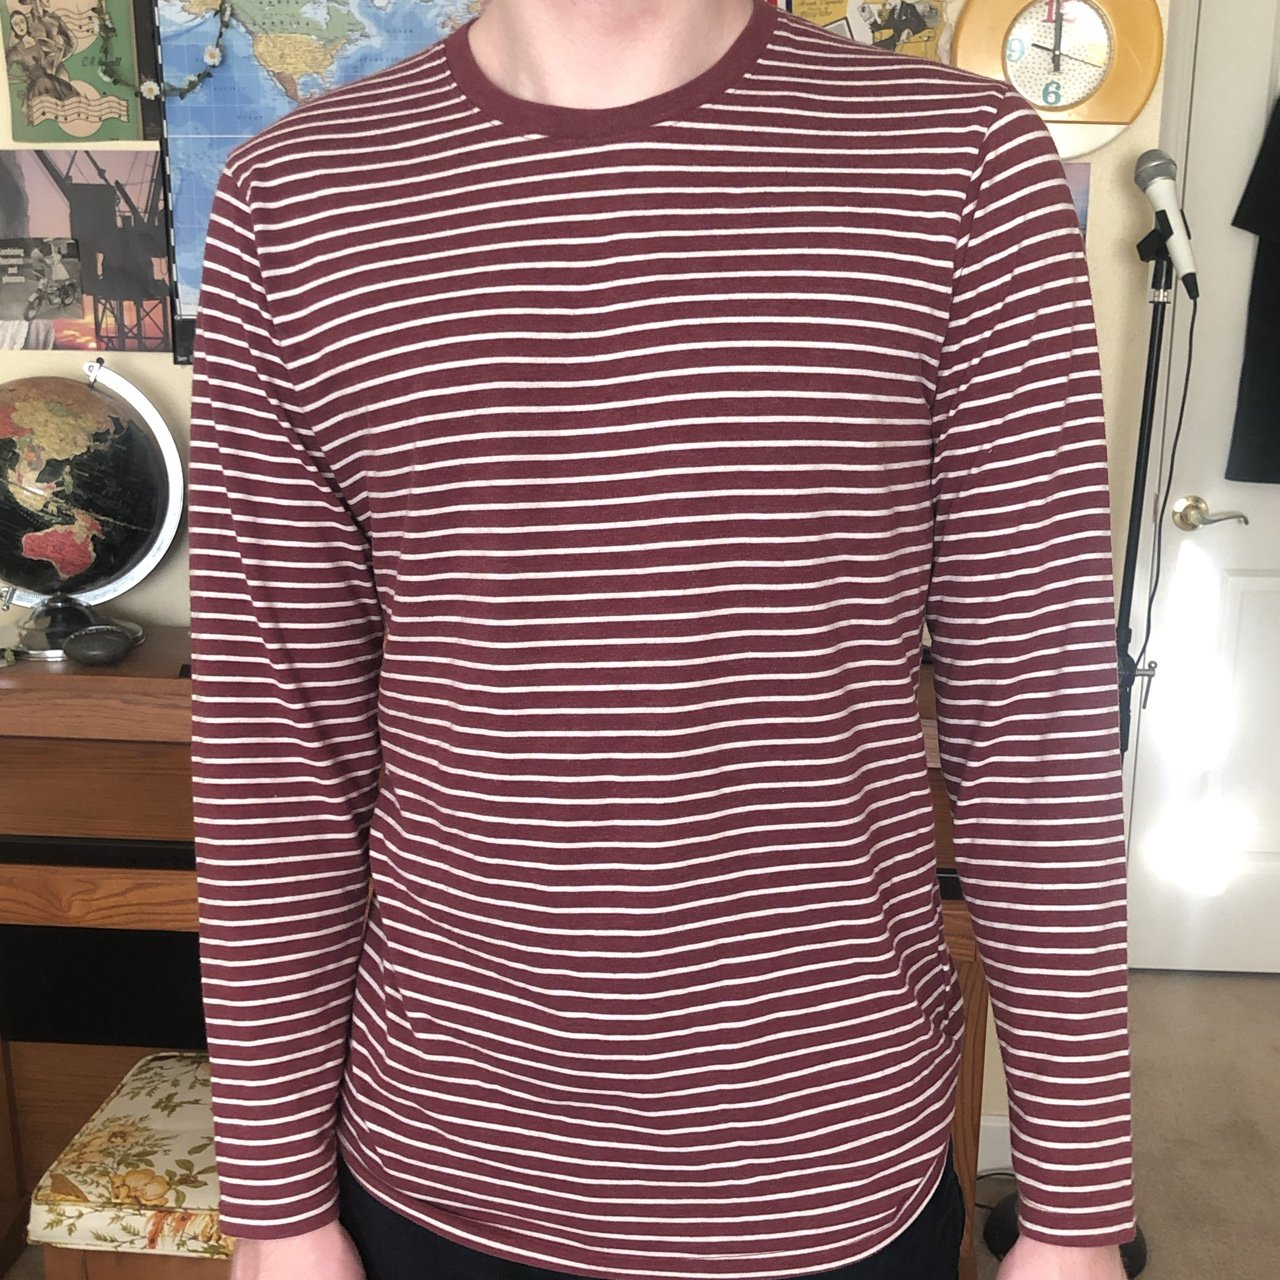 12e8287696 Red And White Striped Shirt Old Navy – EDGE Engineering and ...